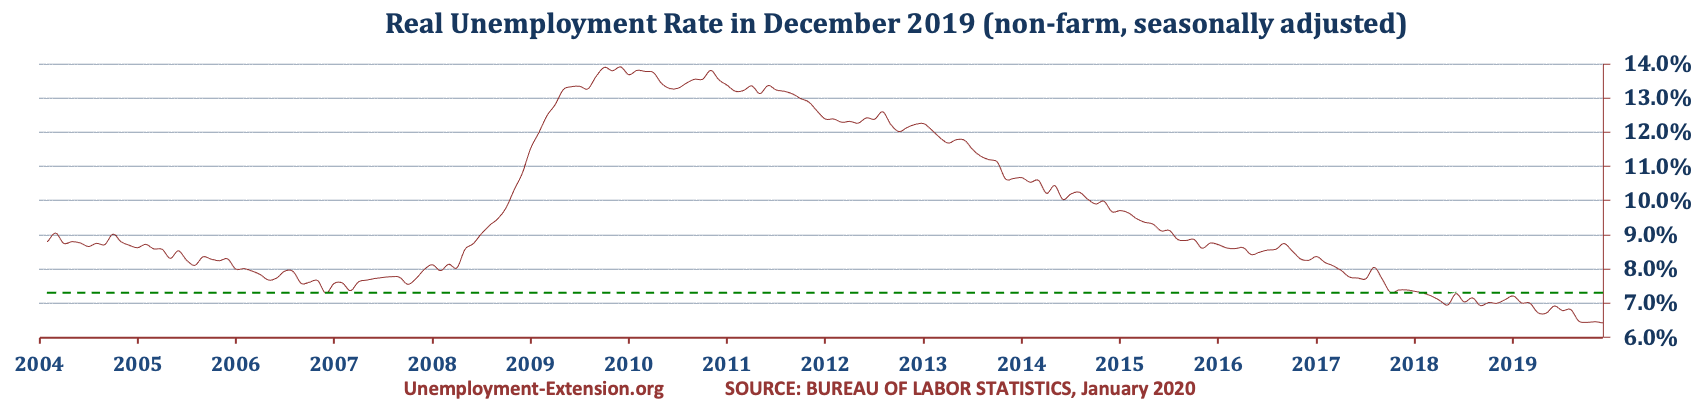 US Real National Unemployment Rate in December of 2019 is 6.4% (November 6.5%, October 6.5%, and September 6.5%).